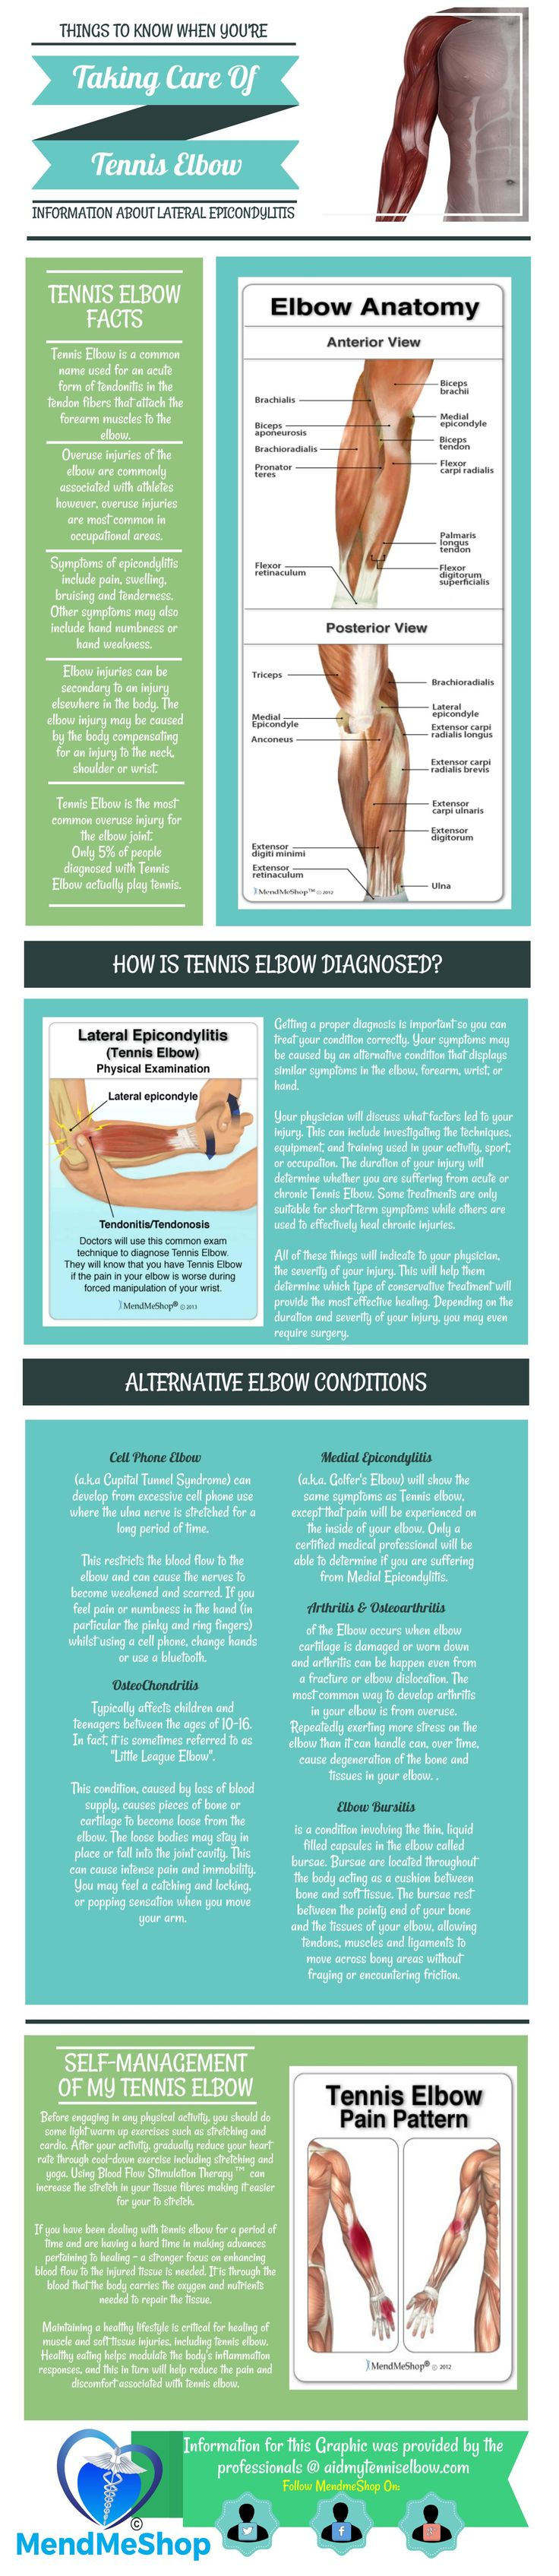 Tennis Elbow is a form of tendinosis which indicates degeneration of the lateral epicondyle. You will have swelling and tenderness on and around the tendons that attach to the small bony part on the outside of your elbow. #lateralepicondyle #tenniselbow